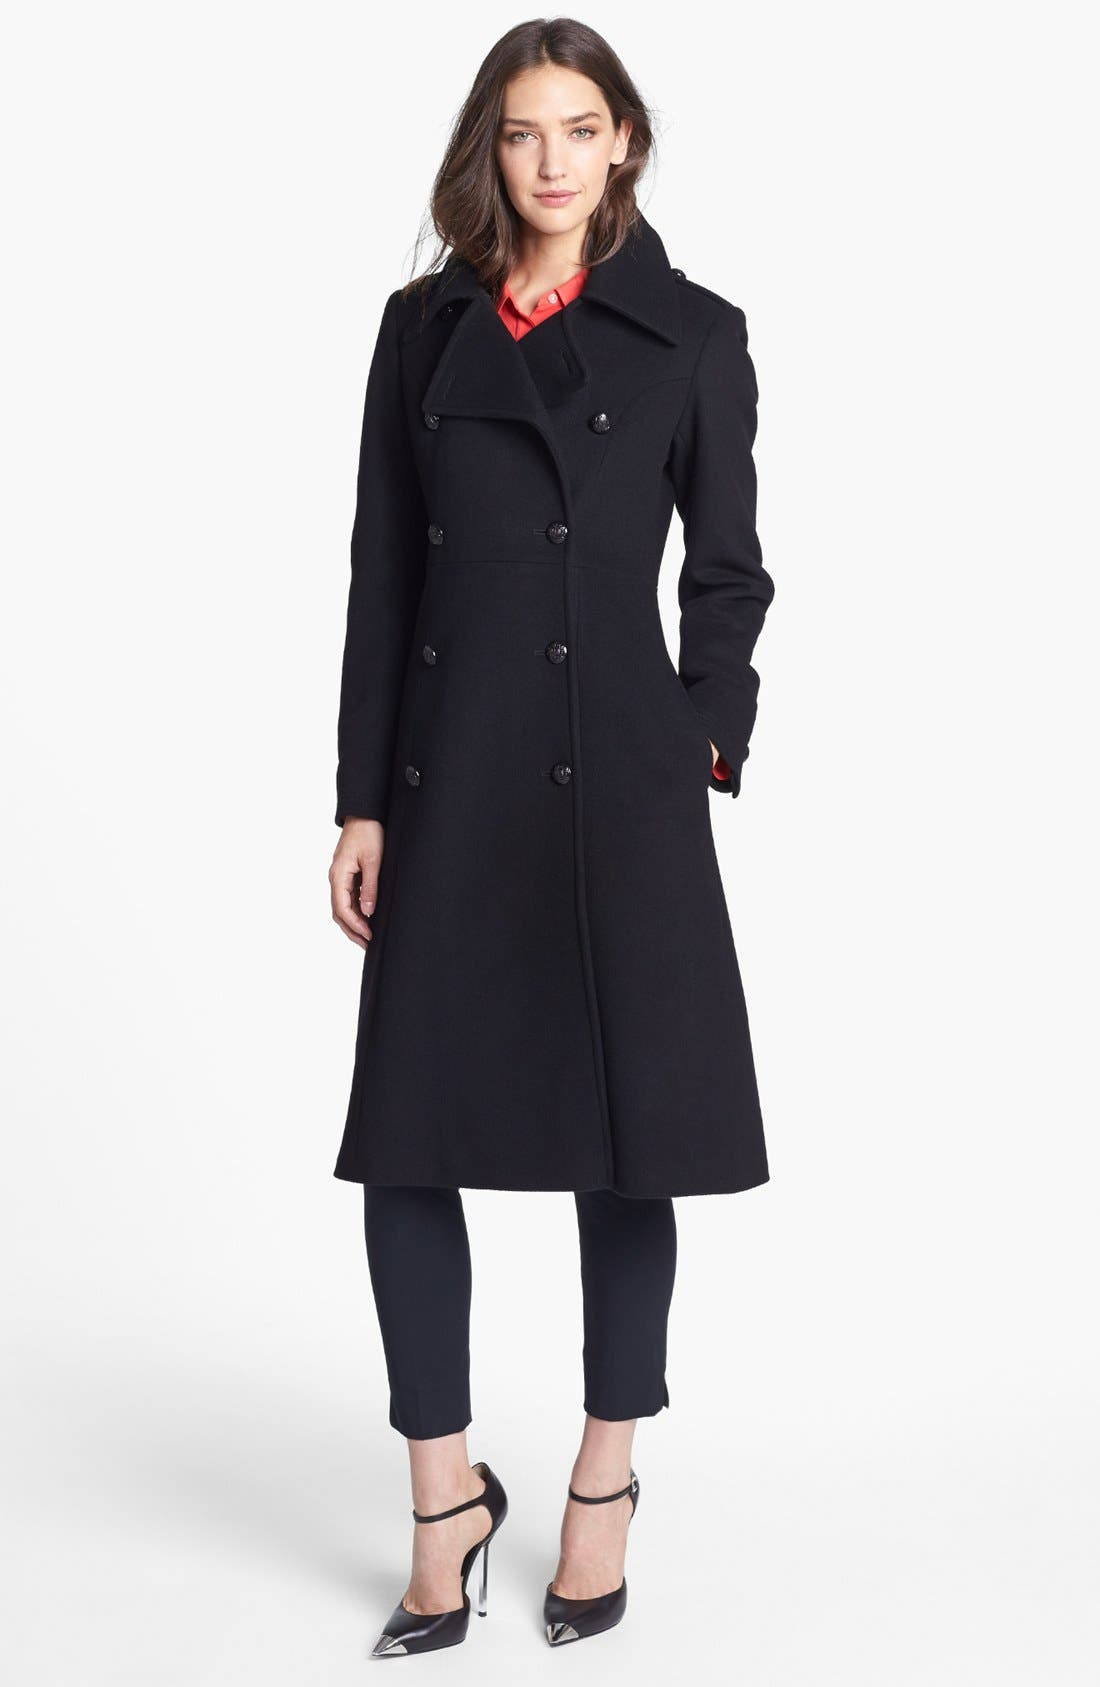 Alternate Image 1 Selected - French Connection Fit & Flare Wool Blend Coat